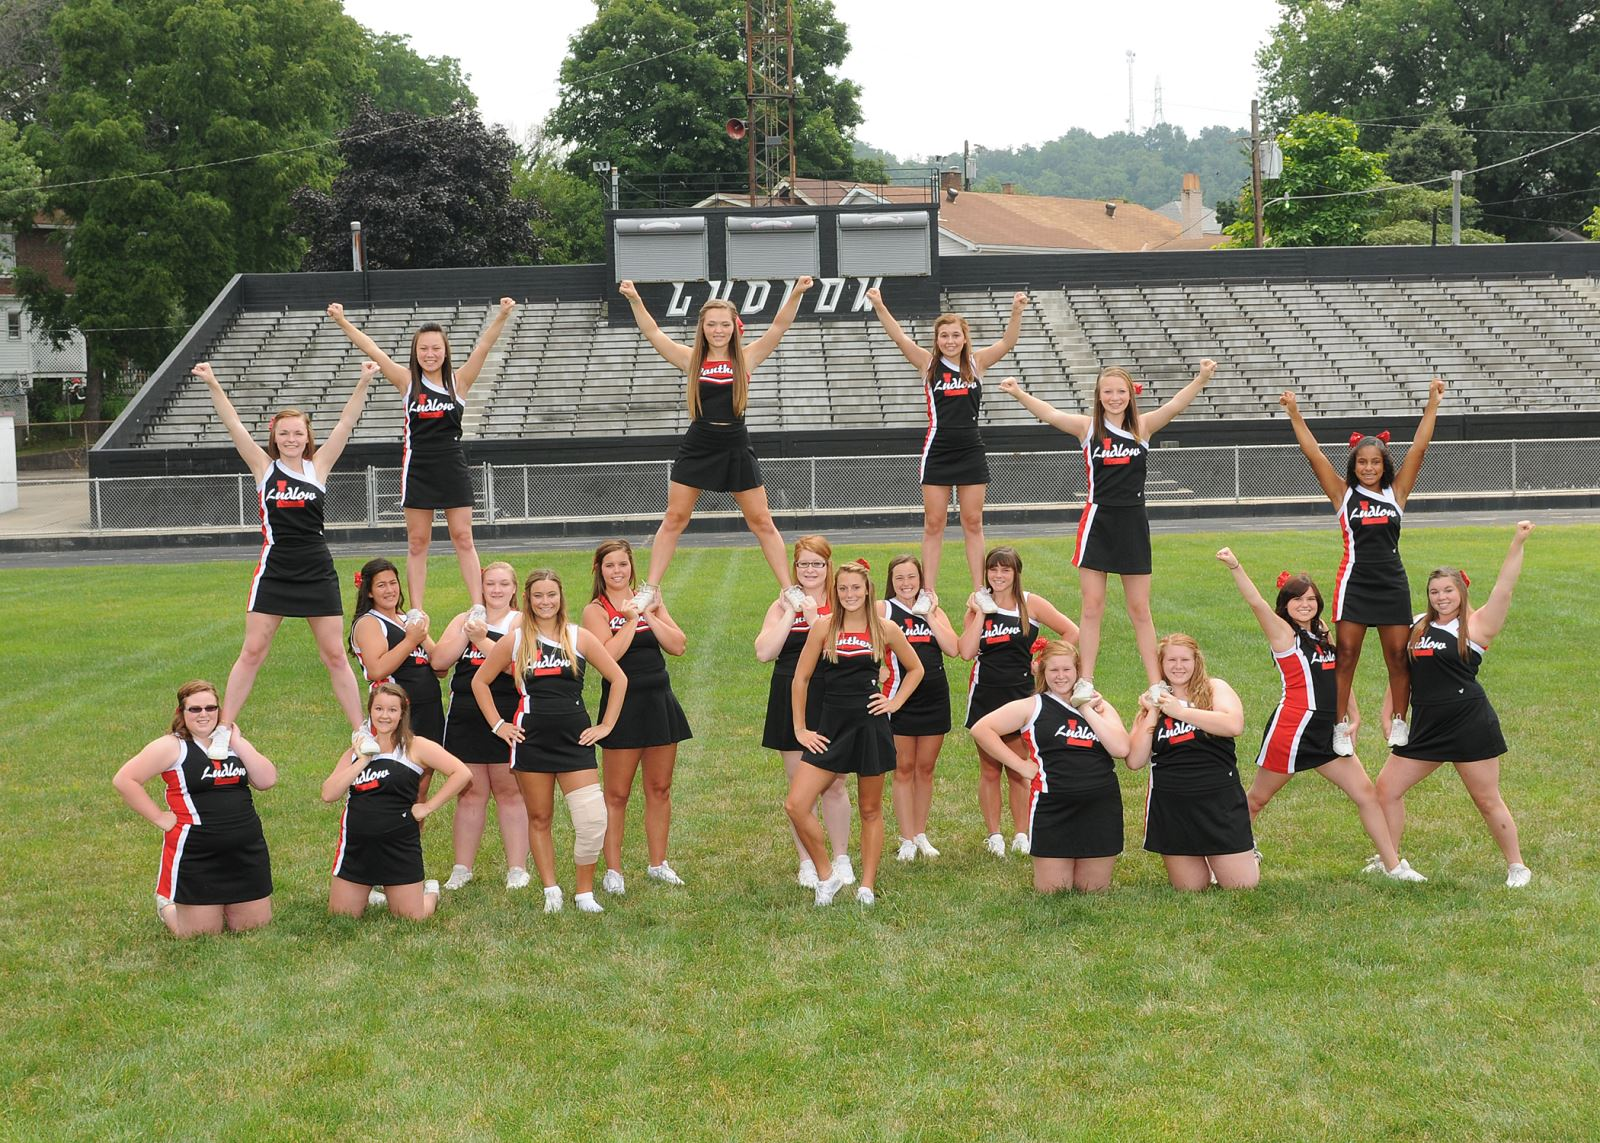 varsity football cheer squad